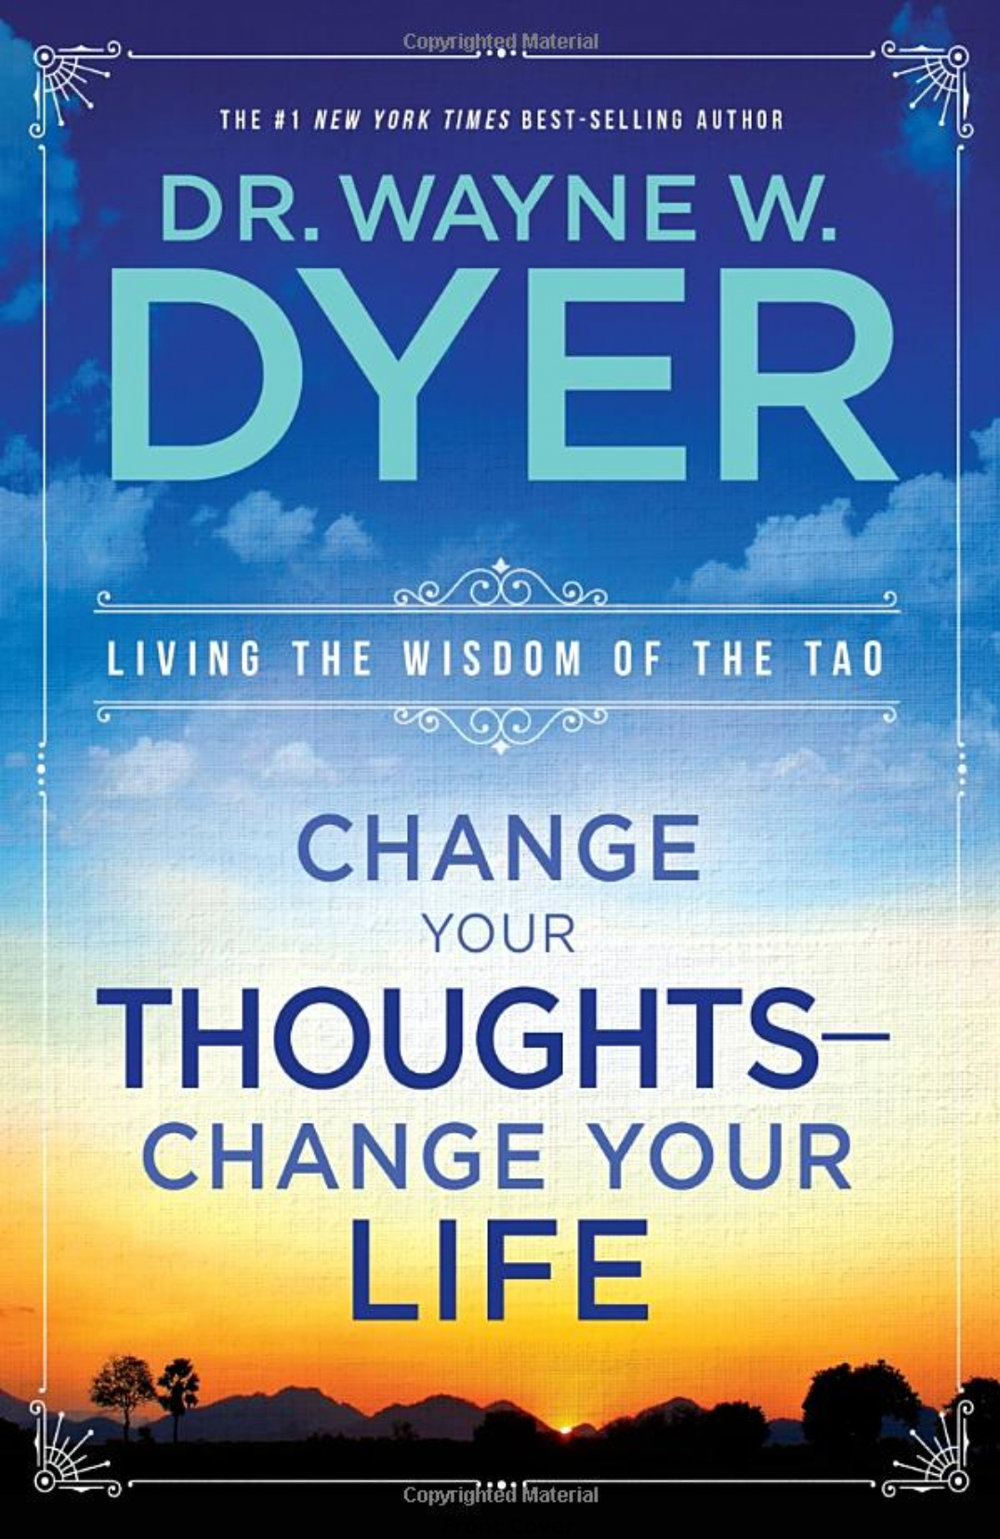 wayne dyer change your thoughts change your life.jpg